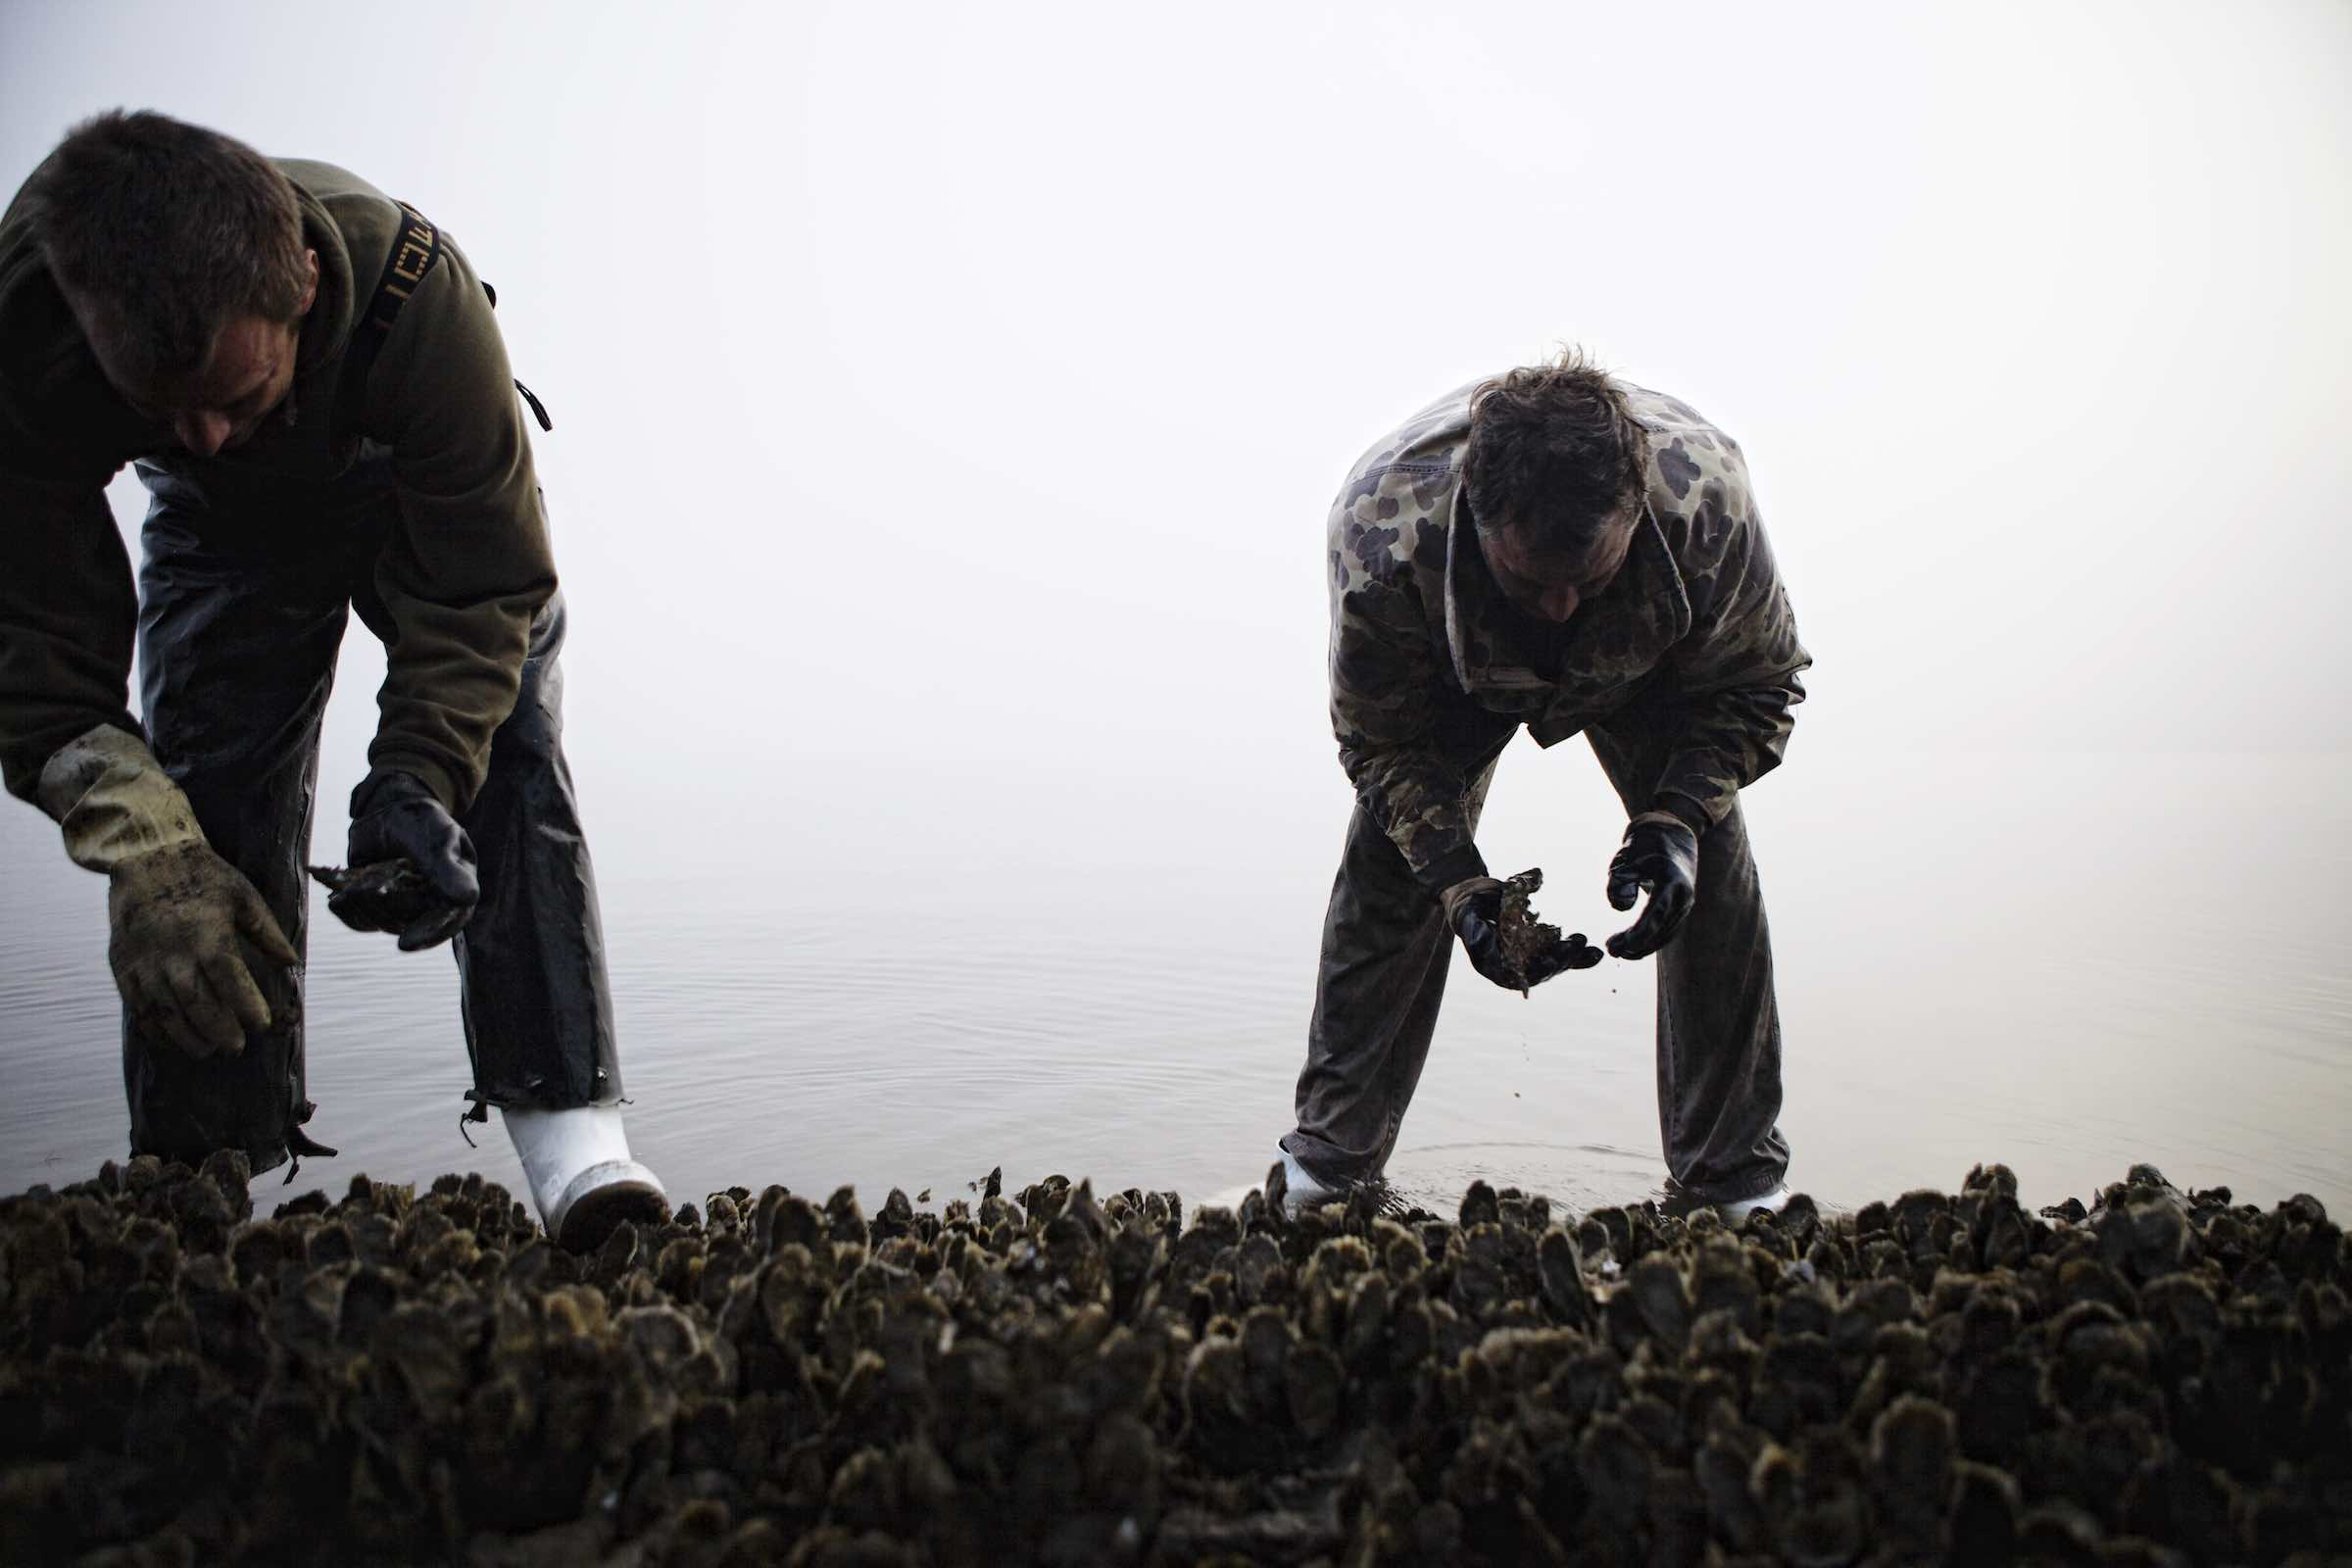 Jody Horton Photography - Fishermen inspecting oysters during harvest.